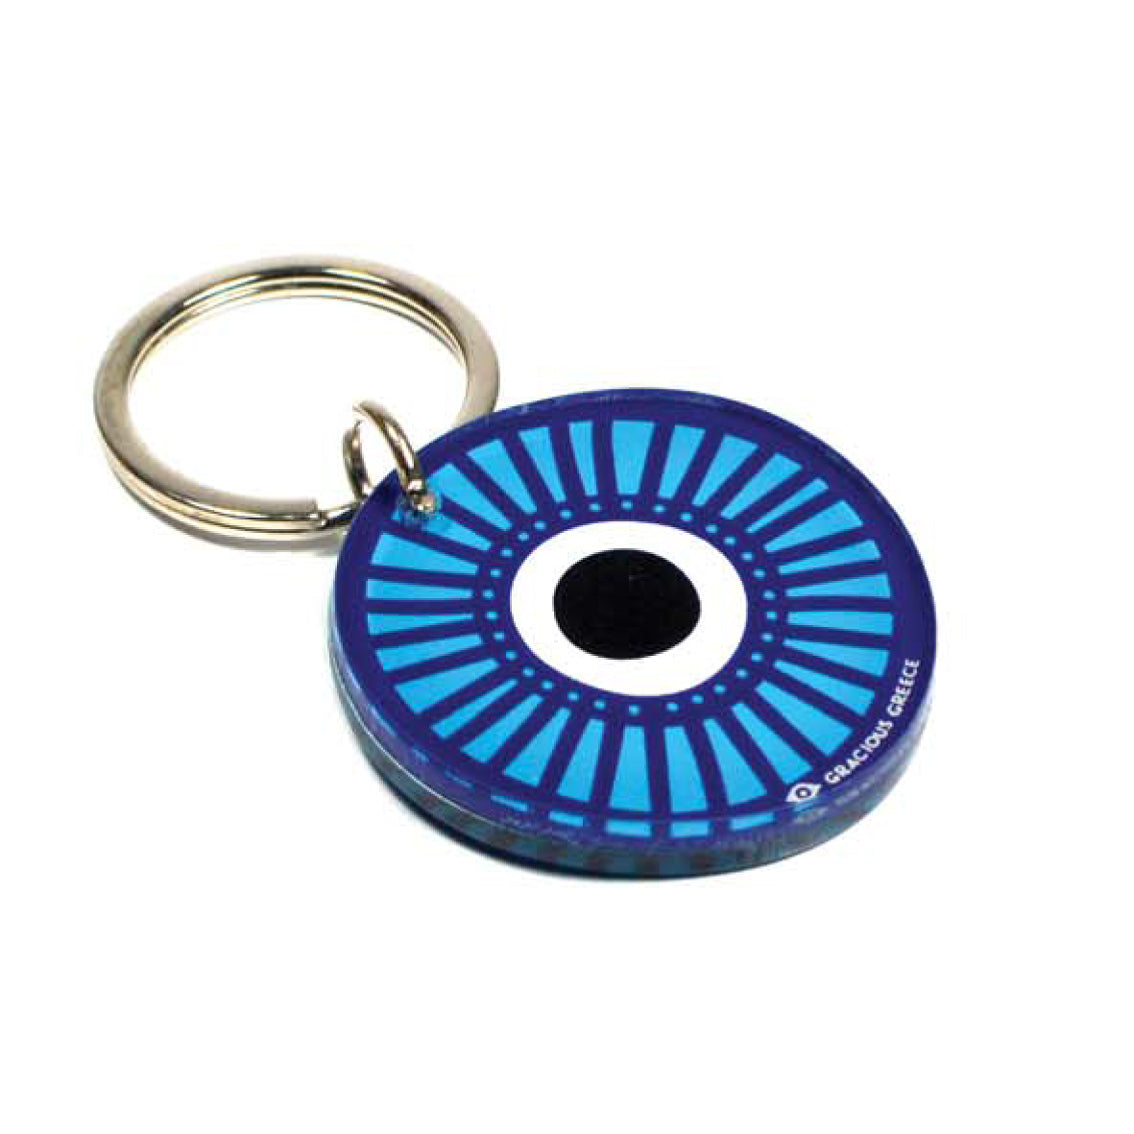 BLUE EVIL EYE-B KEY CHAIN by GRACIOUS GREECE